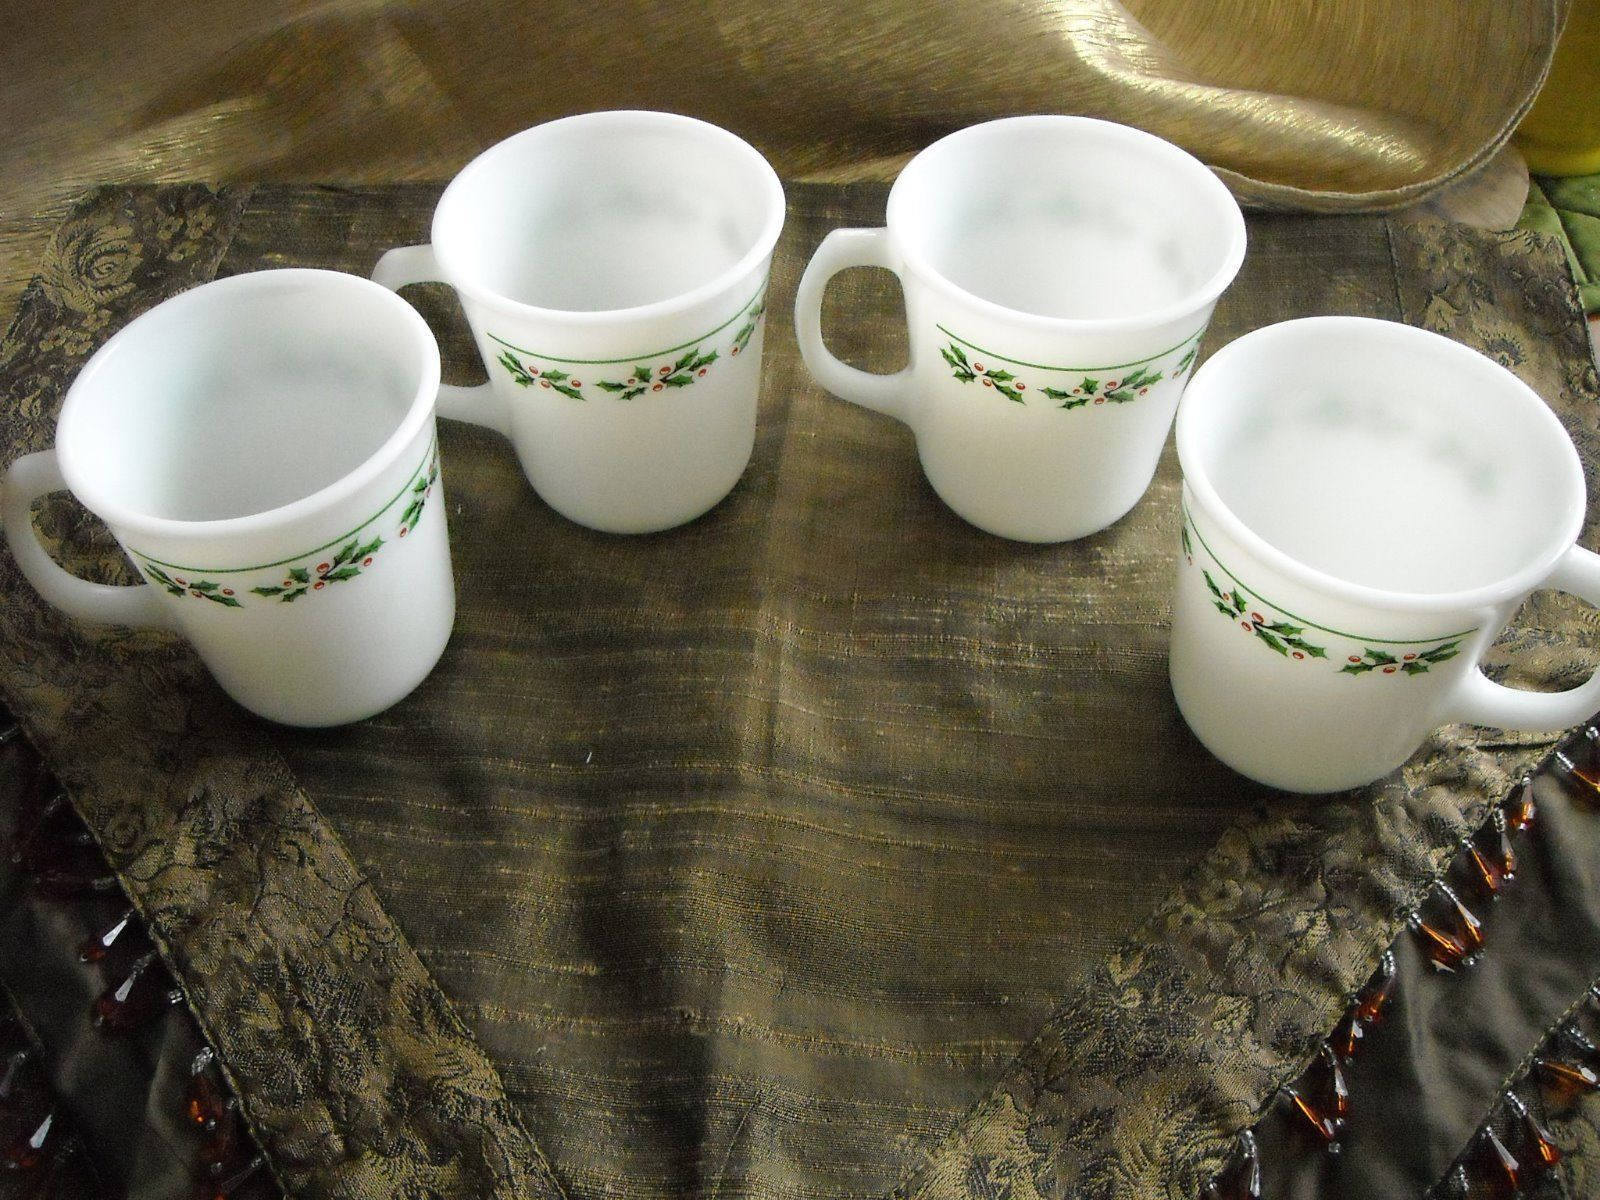 Vintage Corning Ware Coffee Cups Mugs Holly & Berry Trim Set of 4 Milk Glass image 2